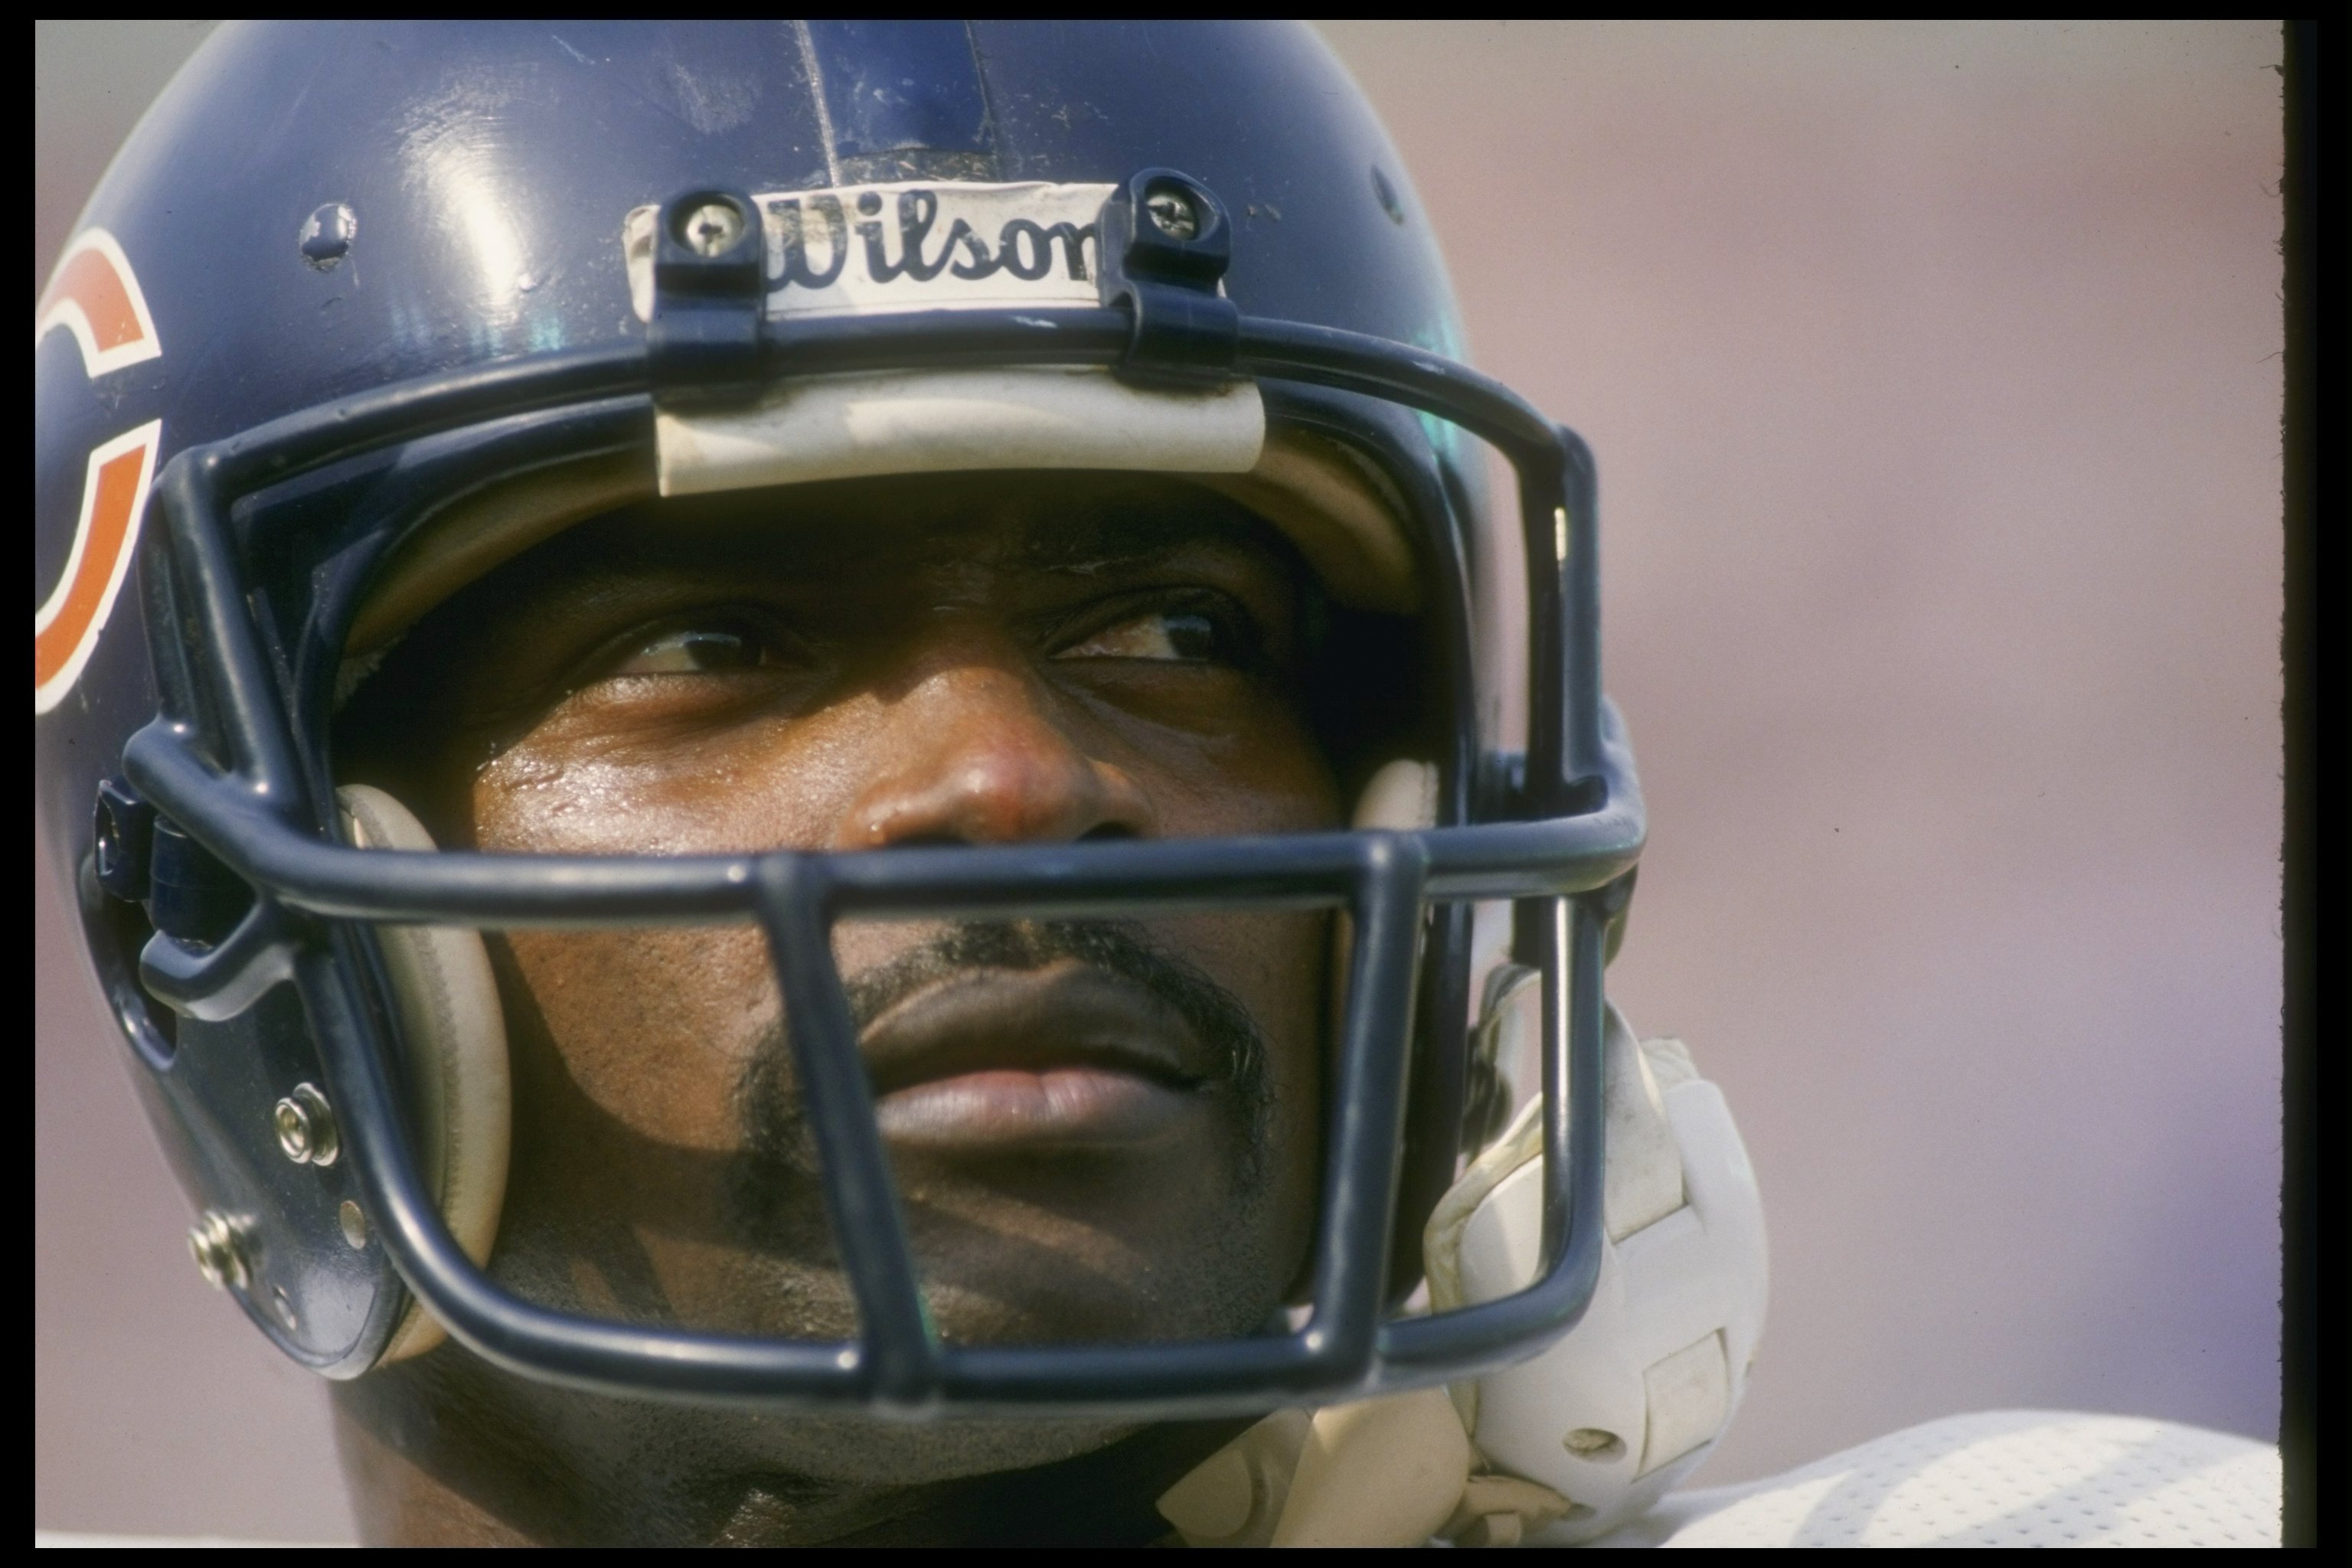 4484cbc2227 27 Dec 1987: Running back Walter Payton of the Chicago Bears looks on  during a